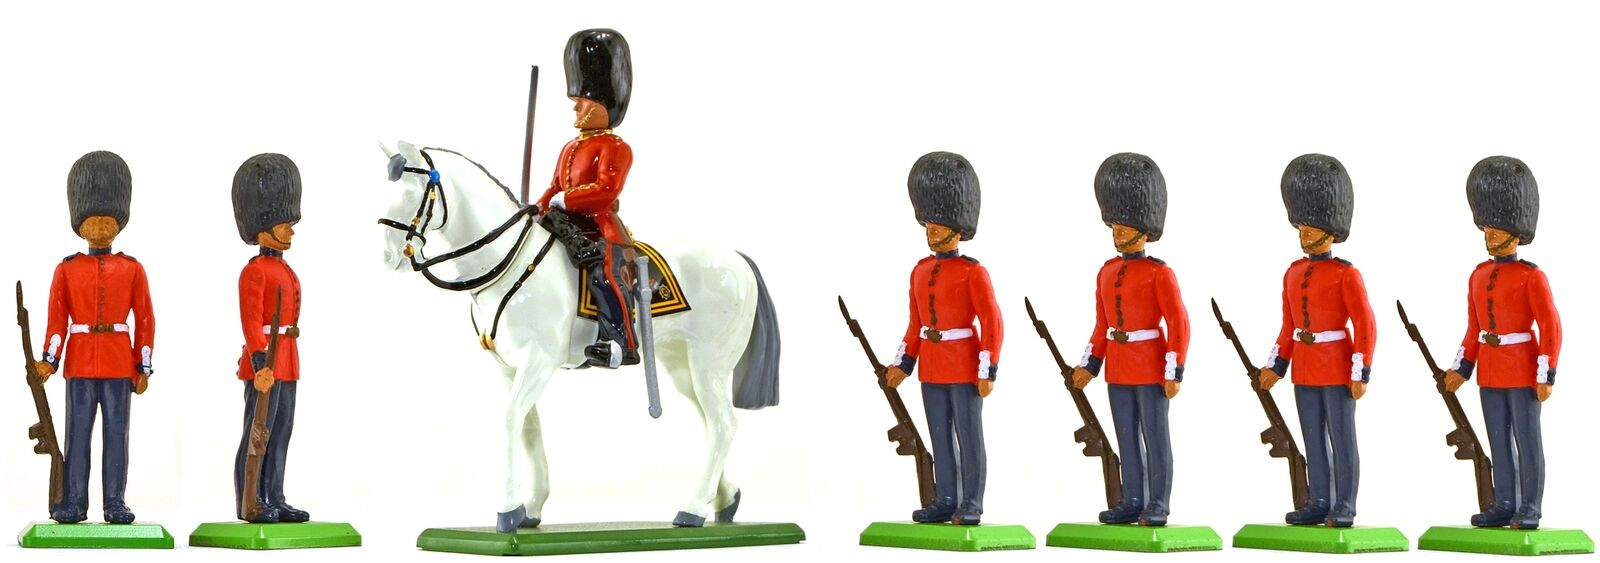 Britains Scots Guards at Ease with Officer - Painted Toy Soldiers set 000802a